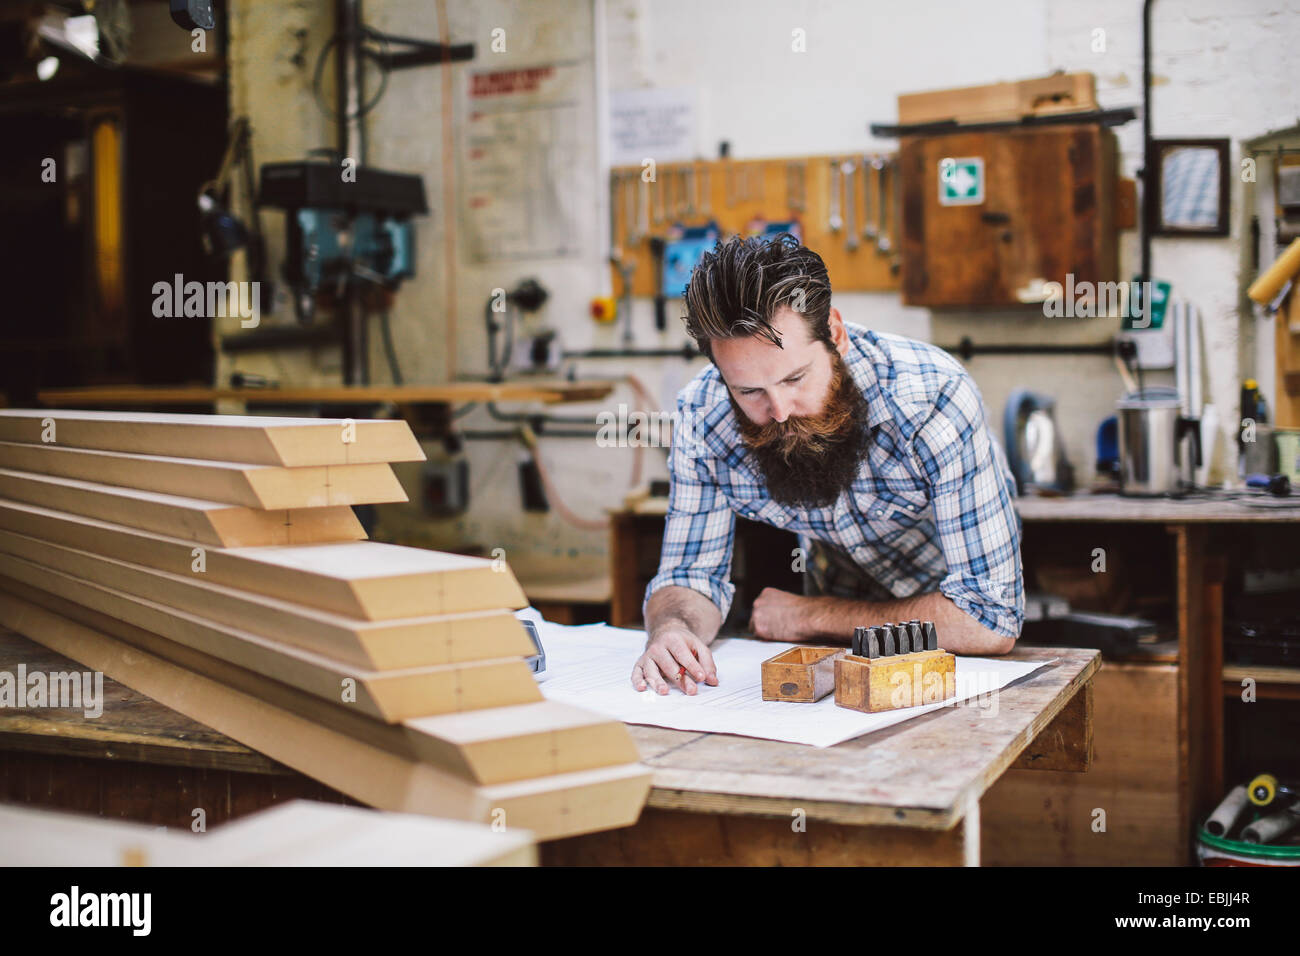 Young craftsman regardant le plan directeur dans l'atelier d'organes Photo Stock